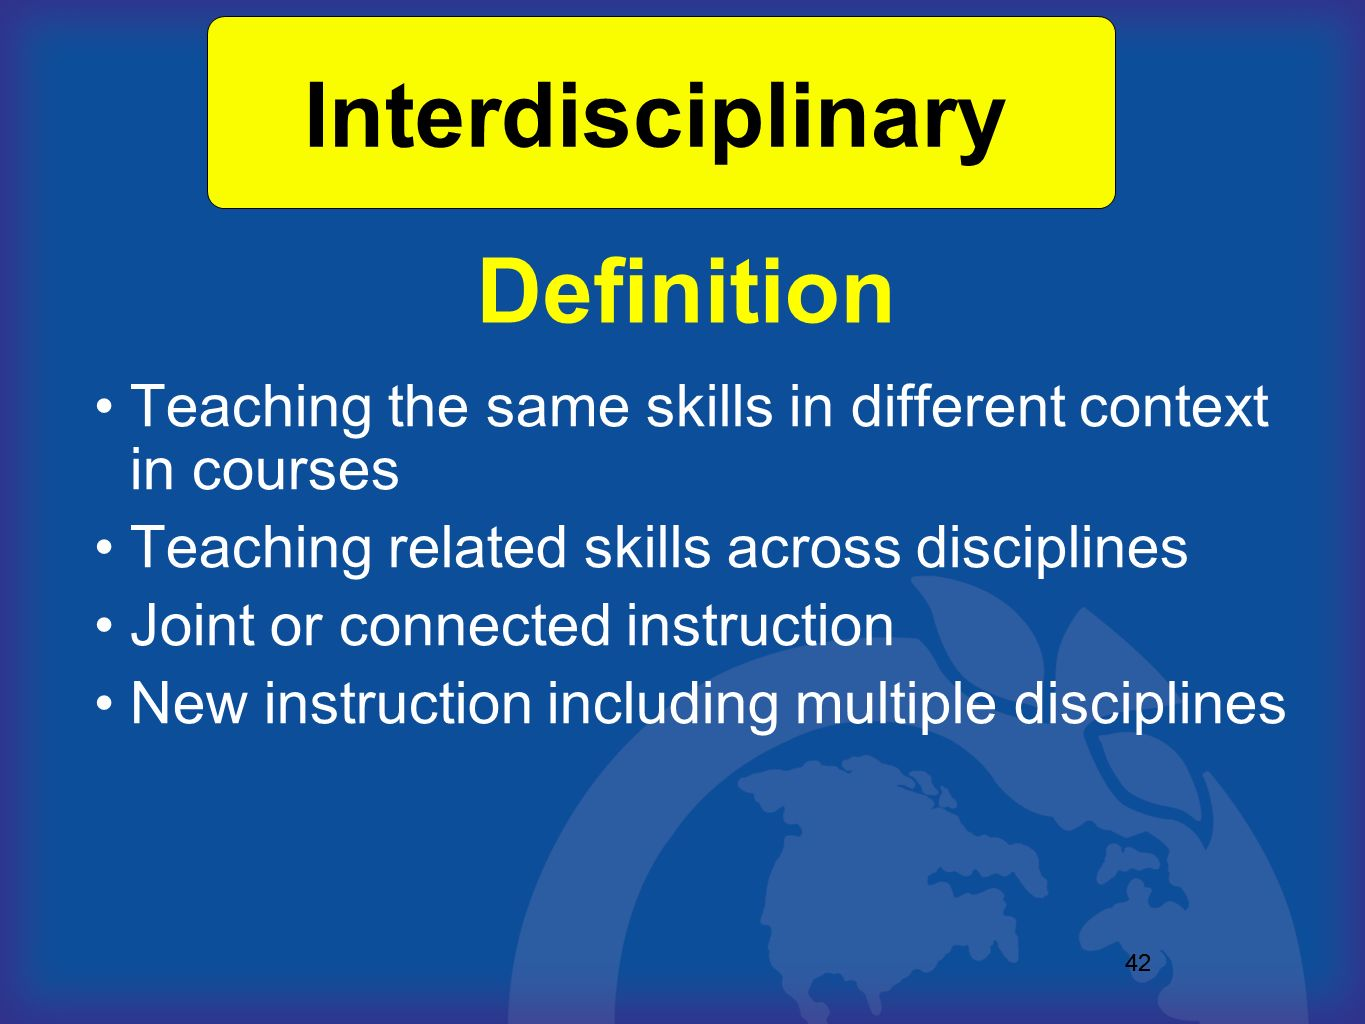 Interdisciplinary Definition